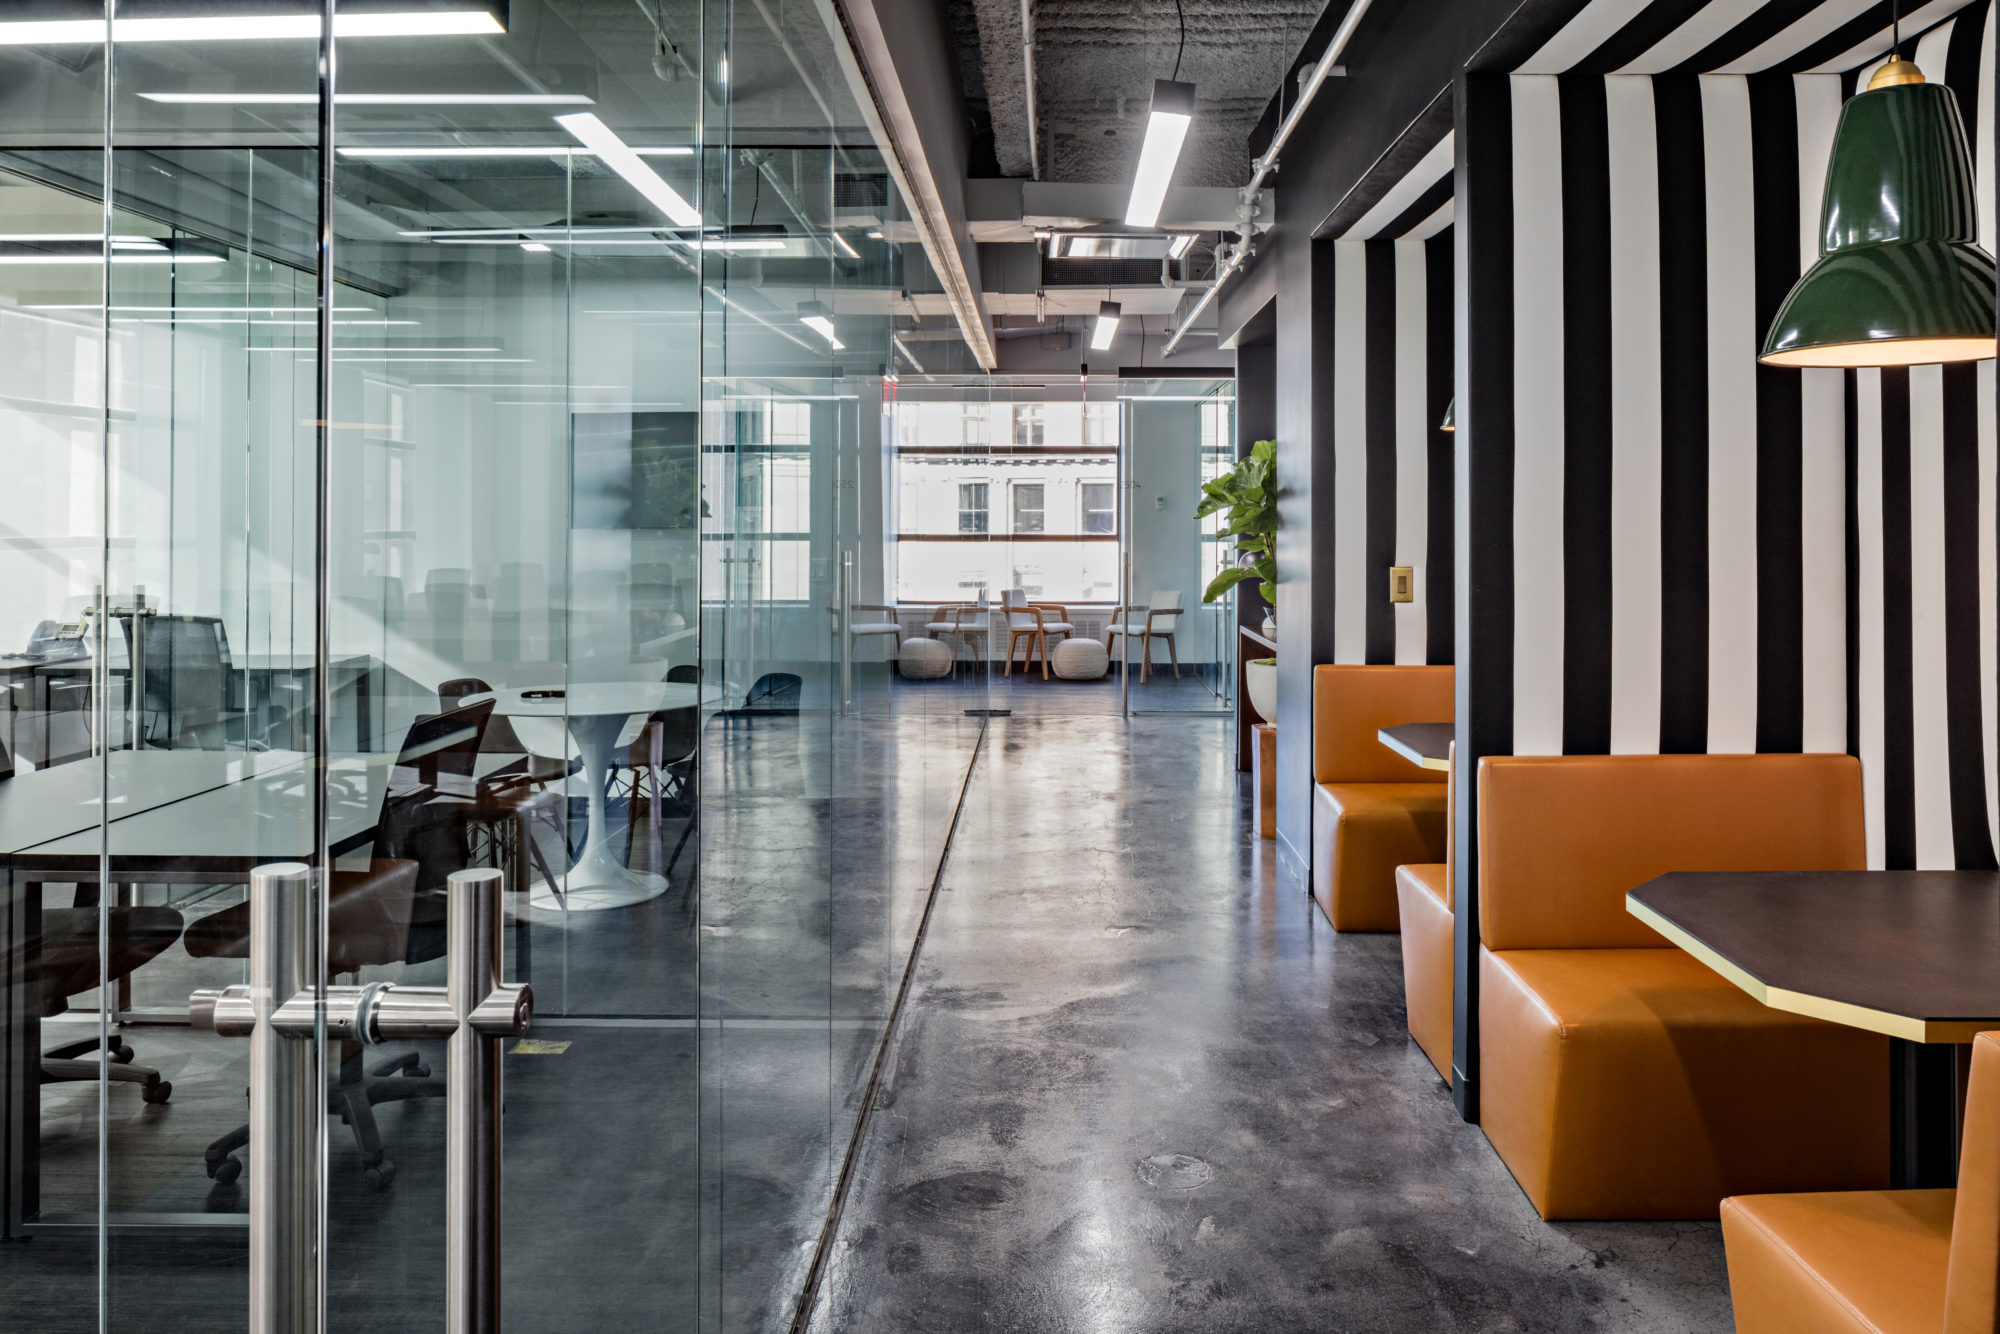 Open office layout with private desks and collaboration areas